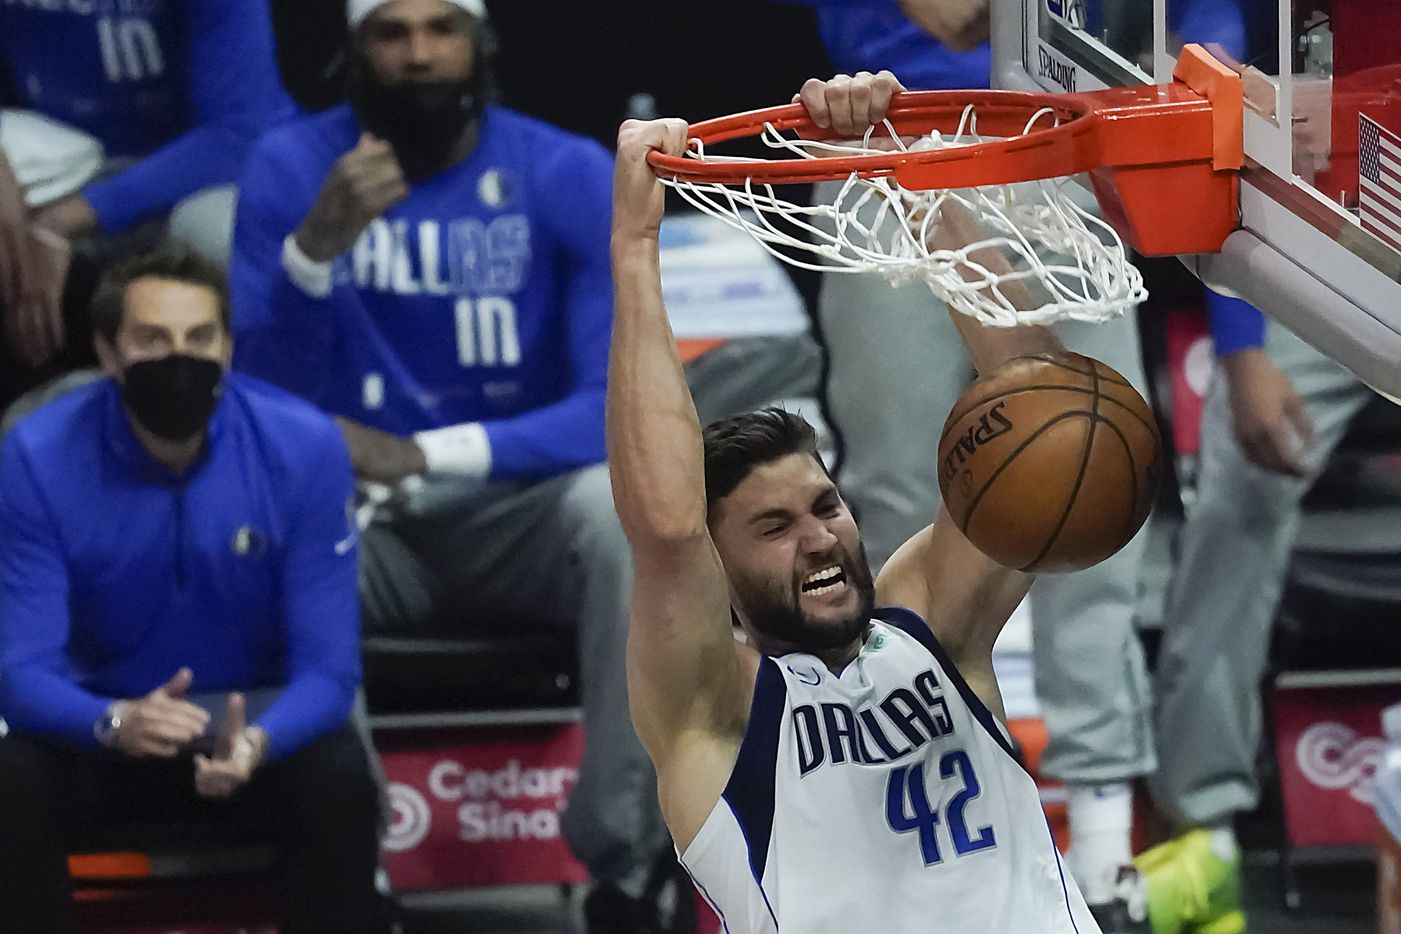 Dallas Mavericks forward Maxi Kleber dunks the ball past LA Clippers forward Marcus Morris Sr. during the first half of an NBA playoff basketball game at Staples Center on Tuesday, May 25, 2021, in Los Angeles.